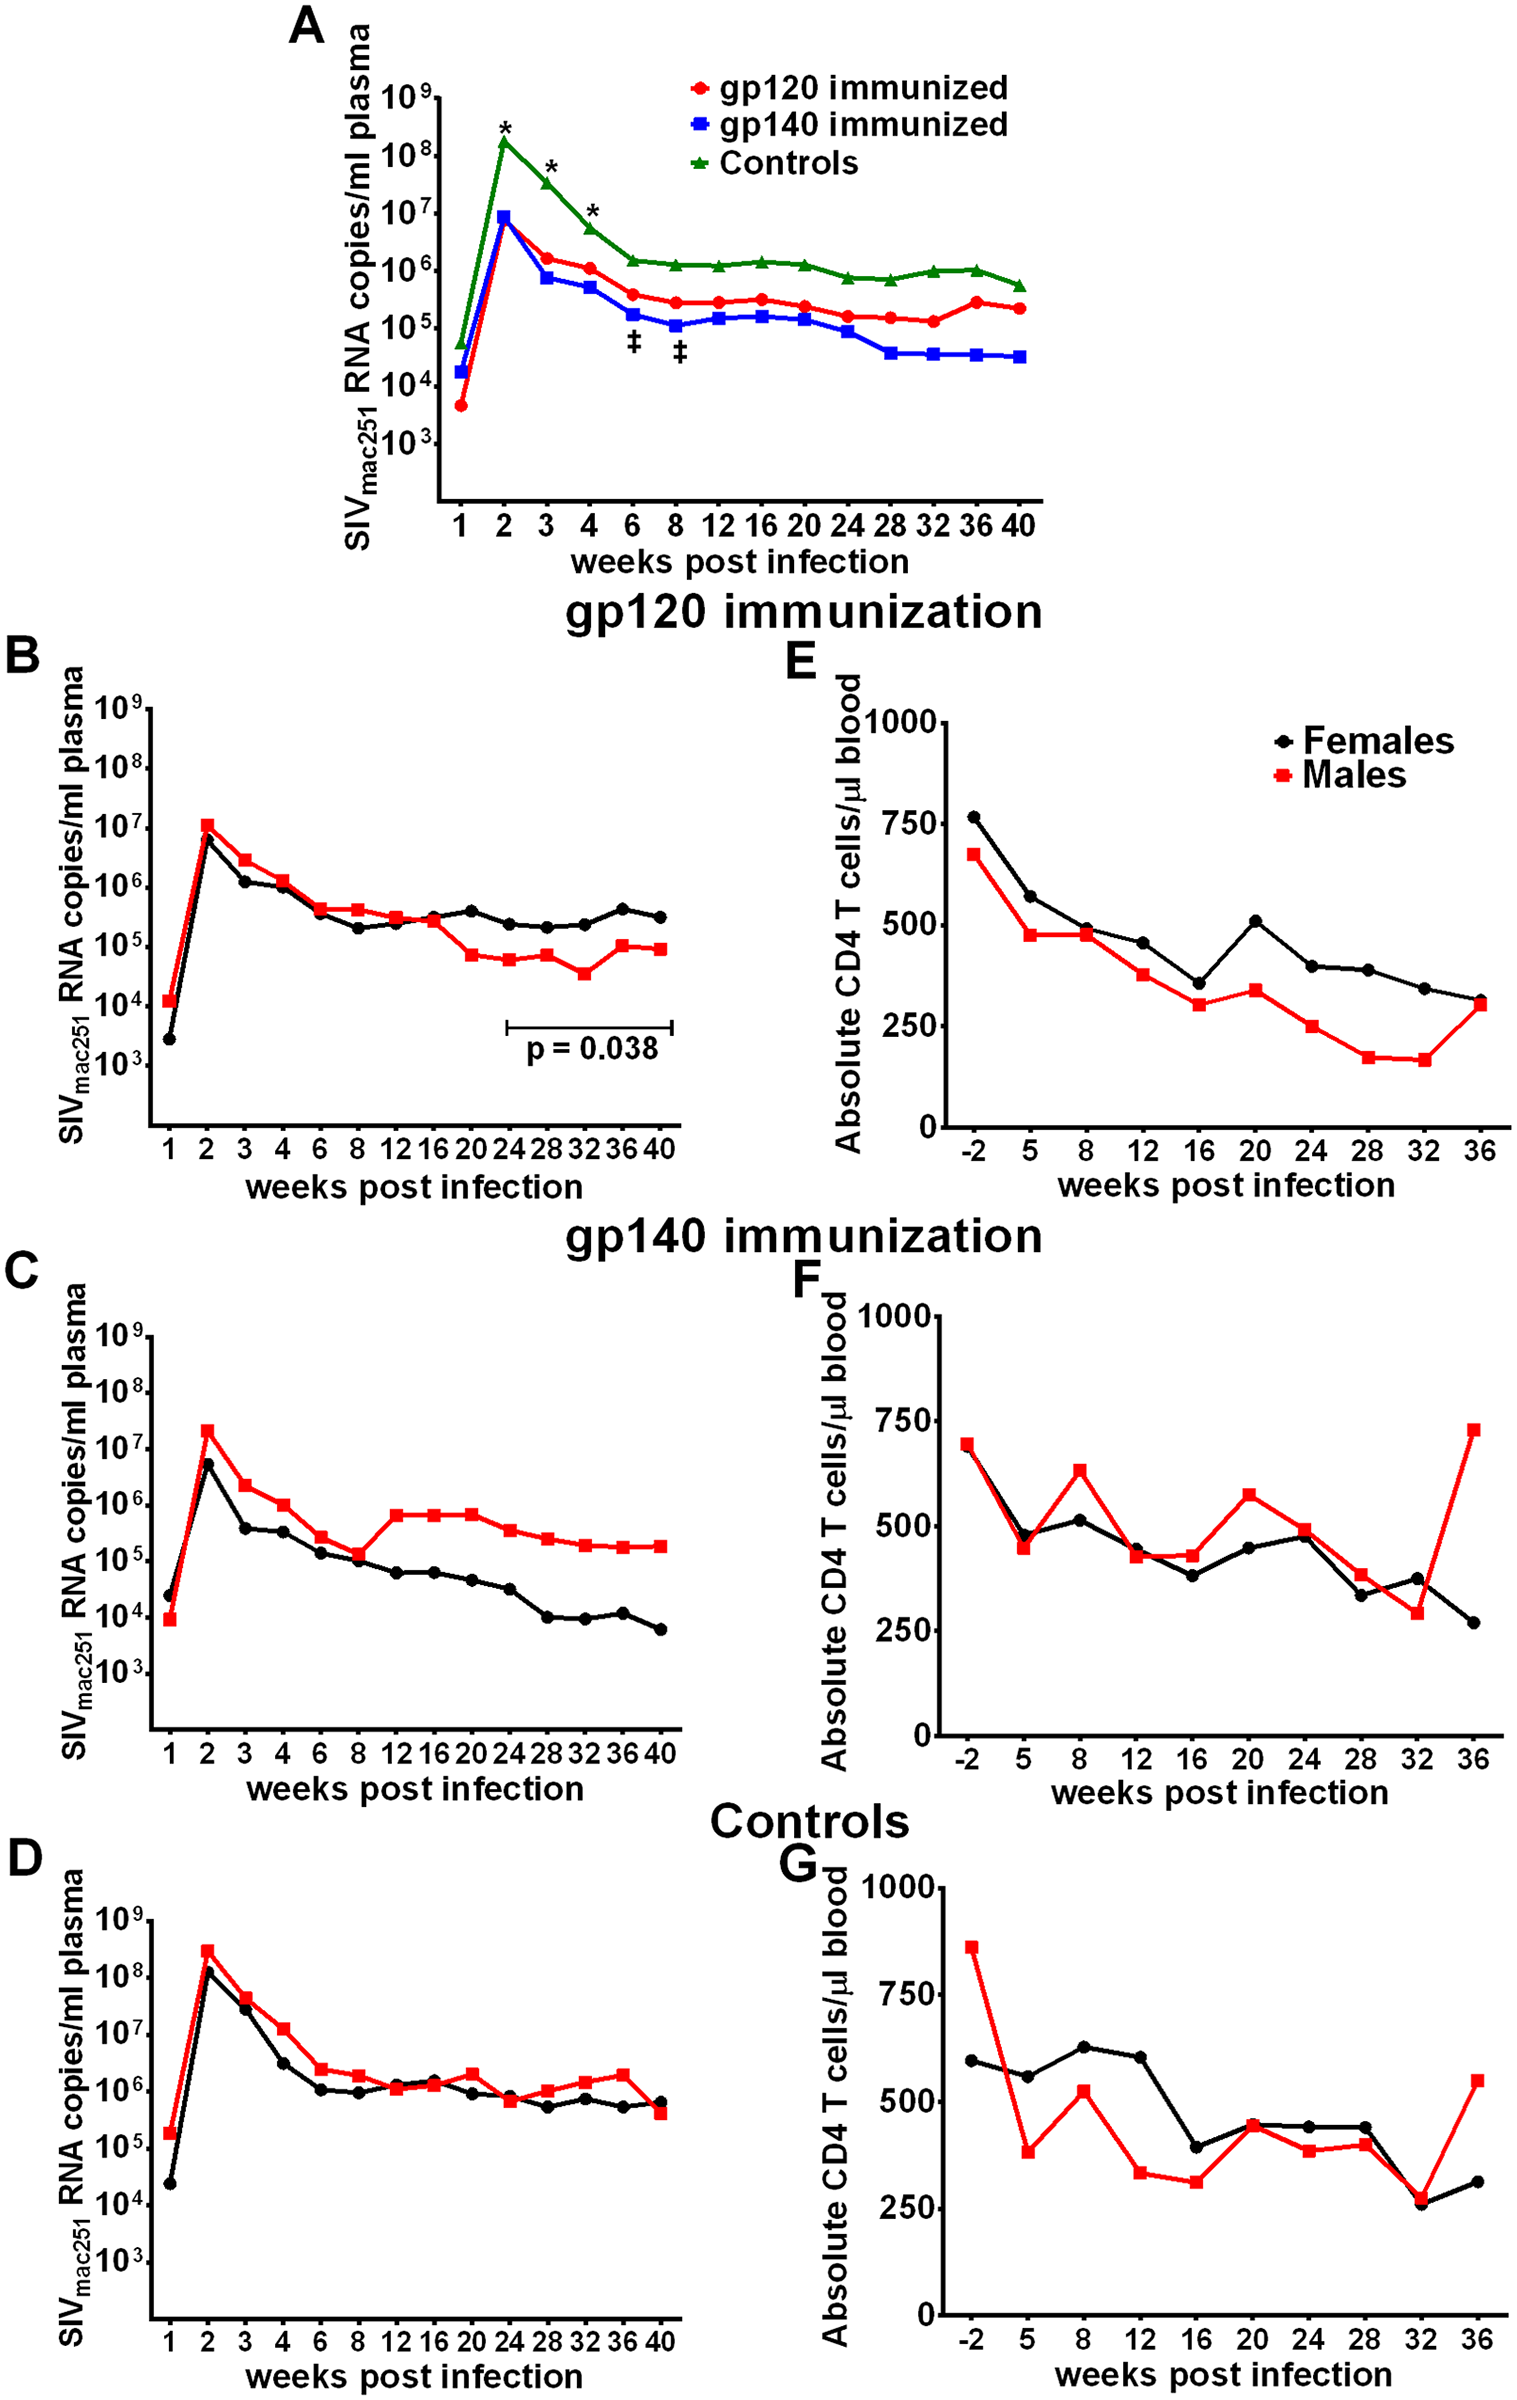 Viral loads post-infection by immunization group and sex.